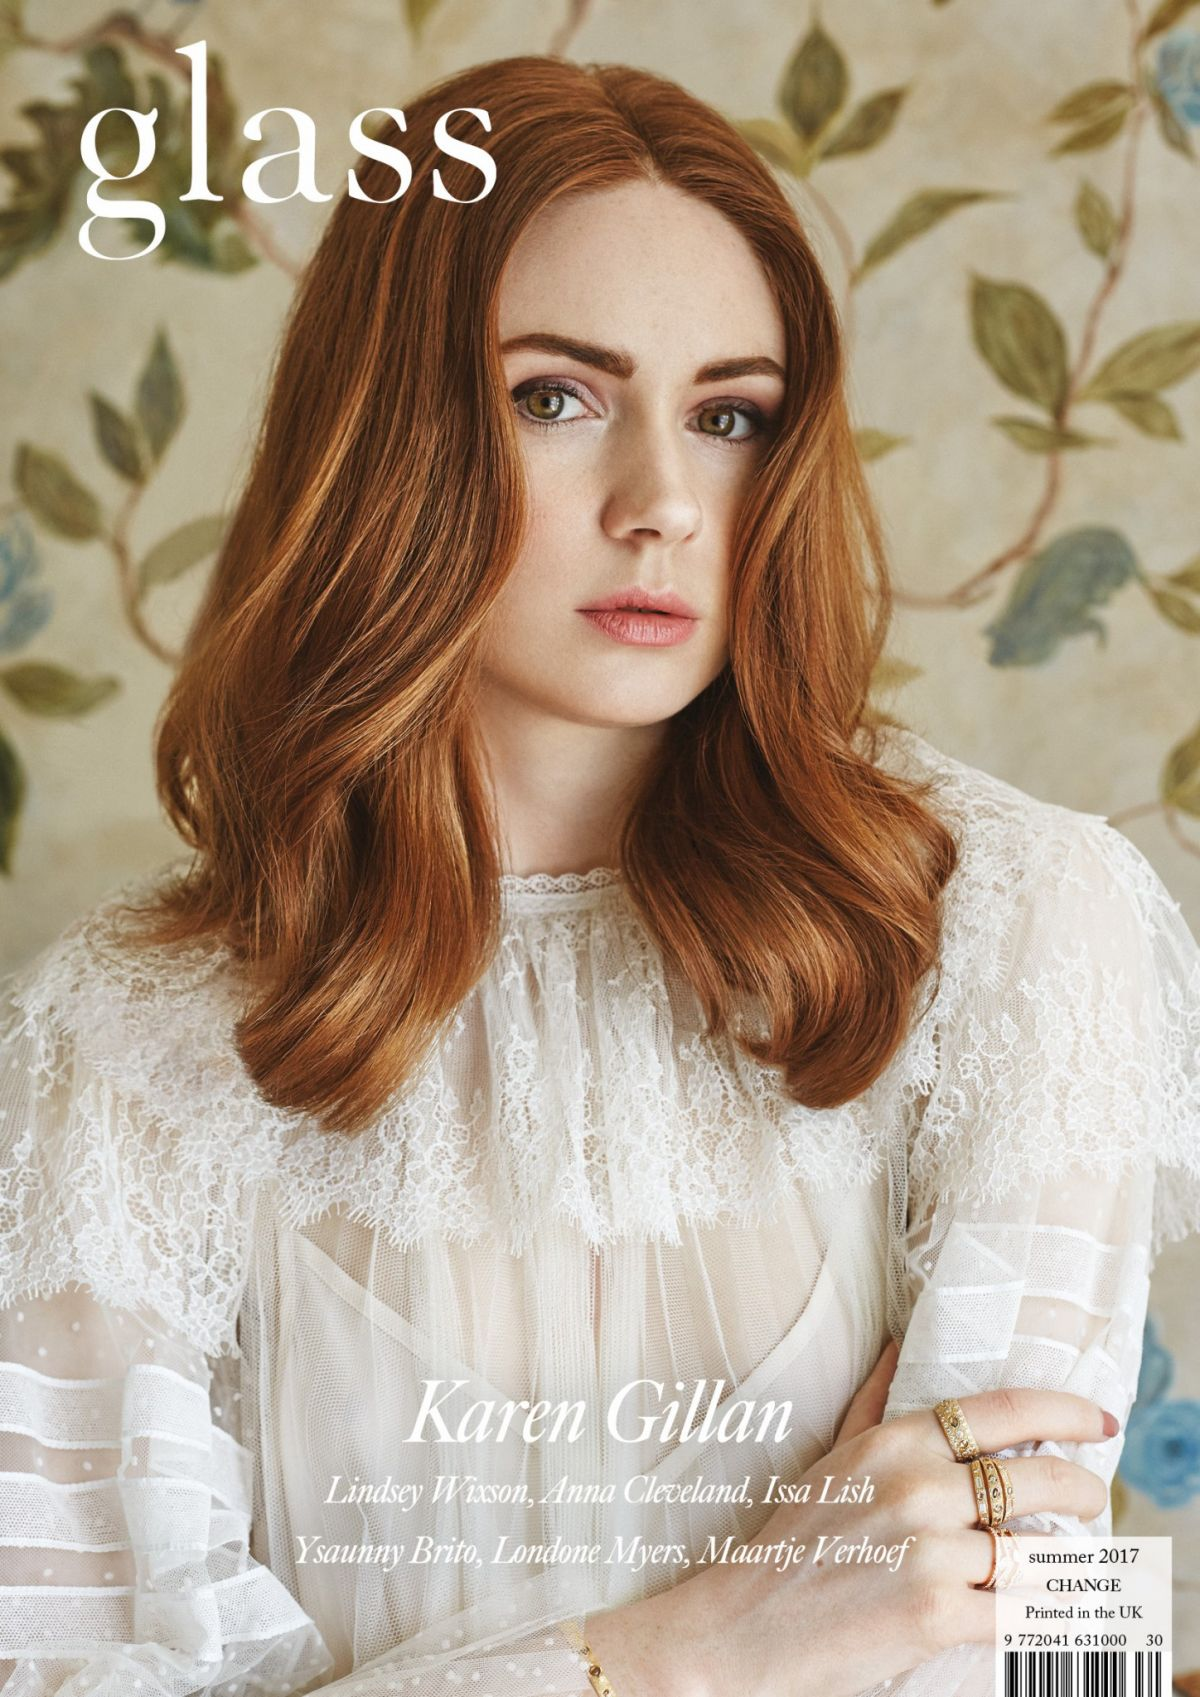 KAREN GILLAN in Glass Magazine, Summer 2017 Issue